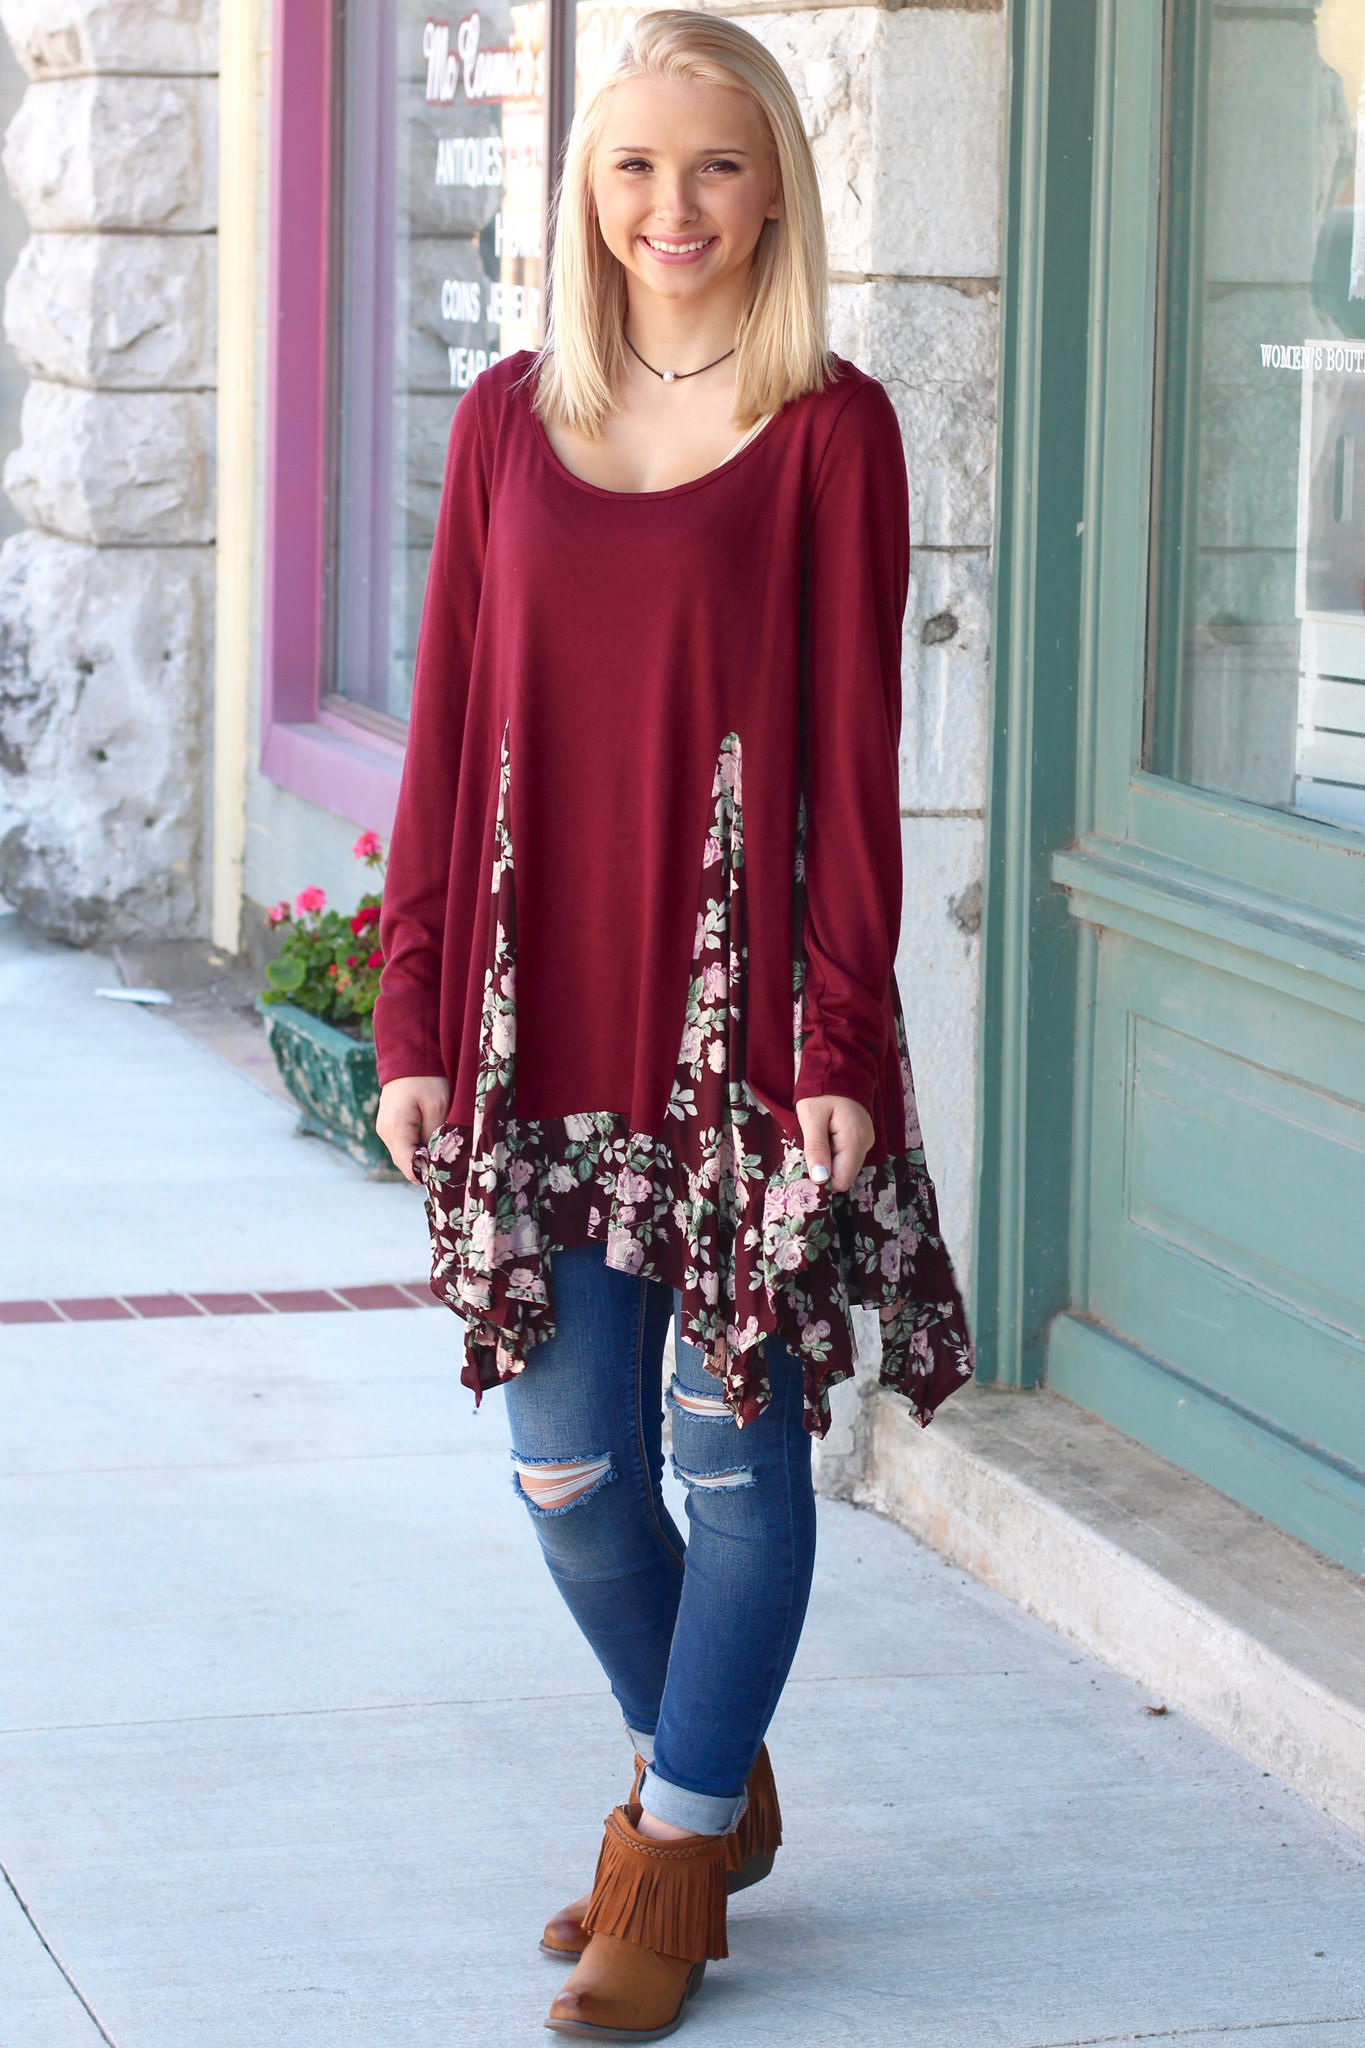 Rose Print Splice Ruffle Tunic From The Fair Lady Boutique